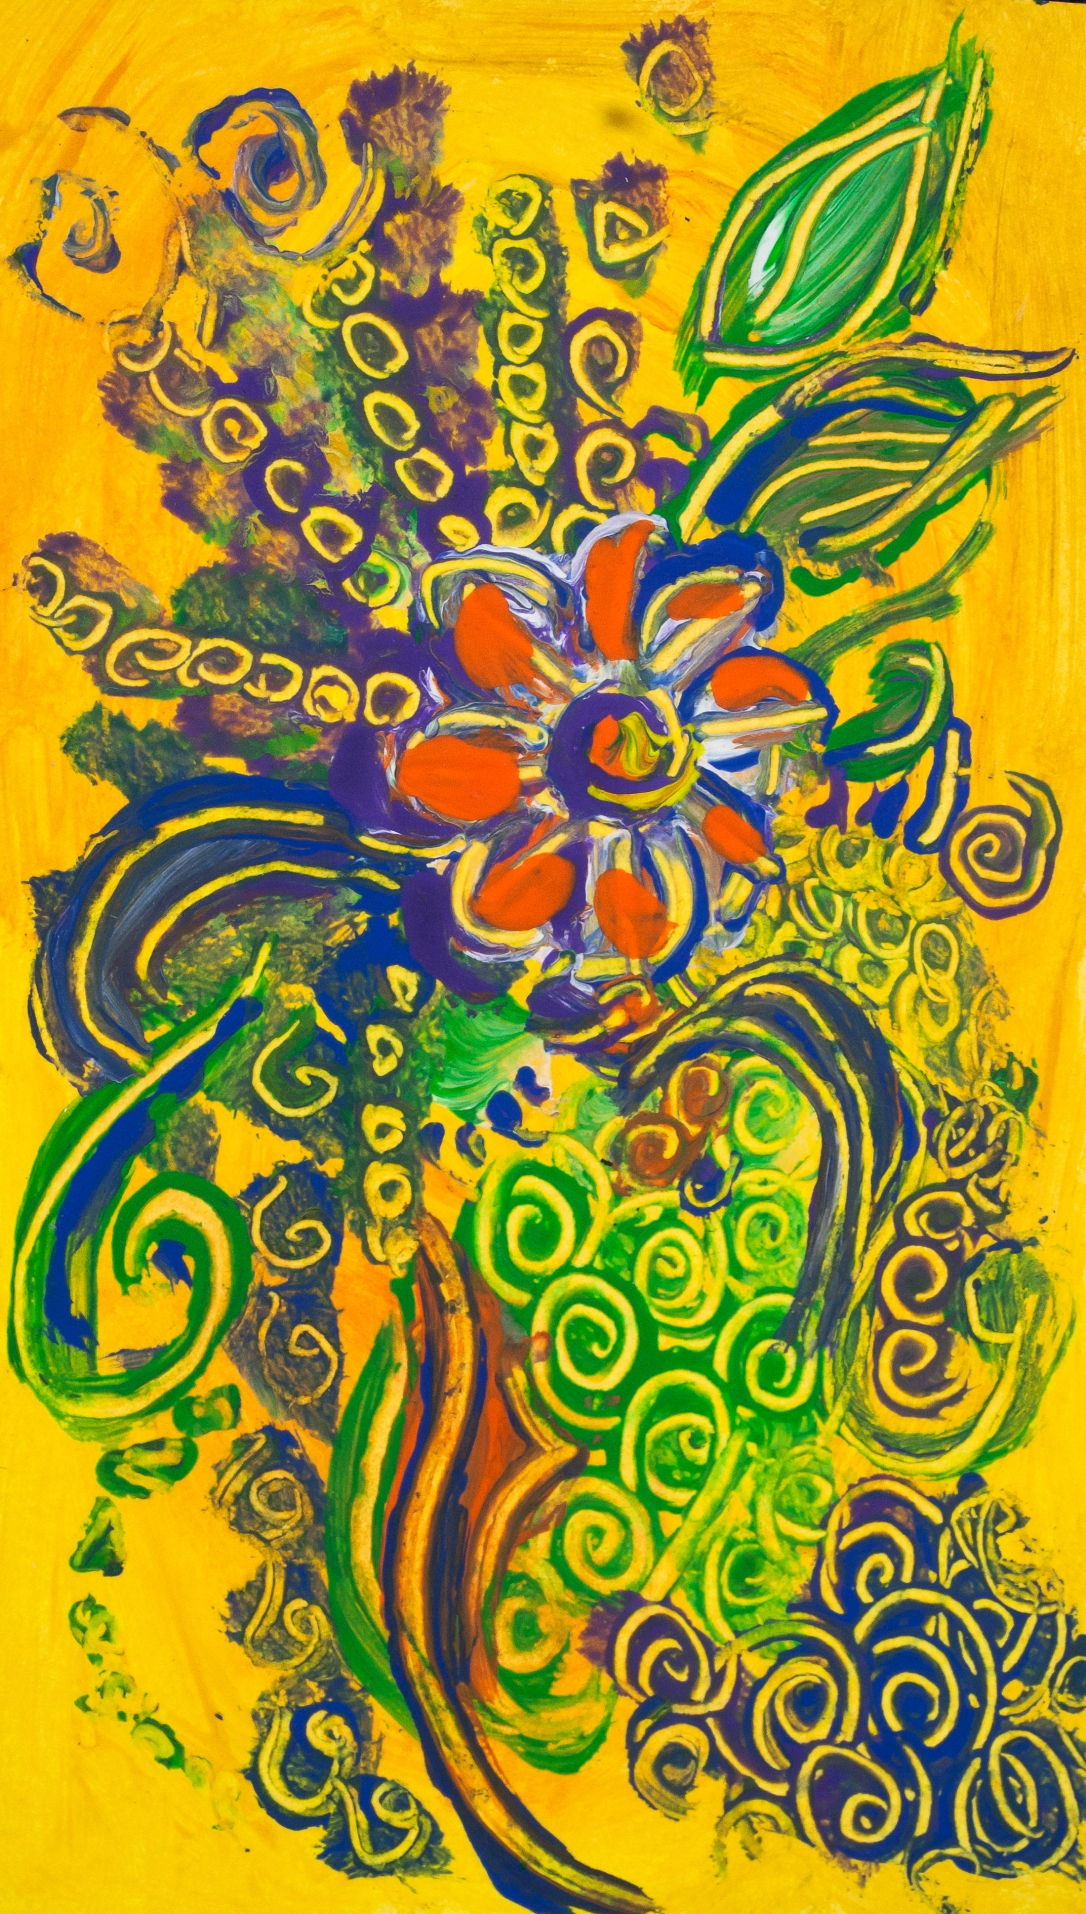 Abstract flower composition like image on yellow background with a central orange flower, with bended lines, spots of color and round shapes